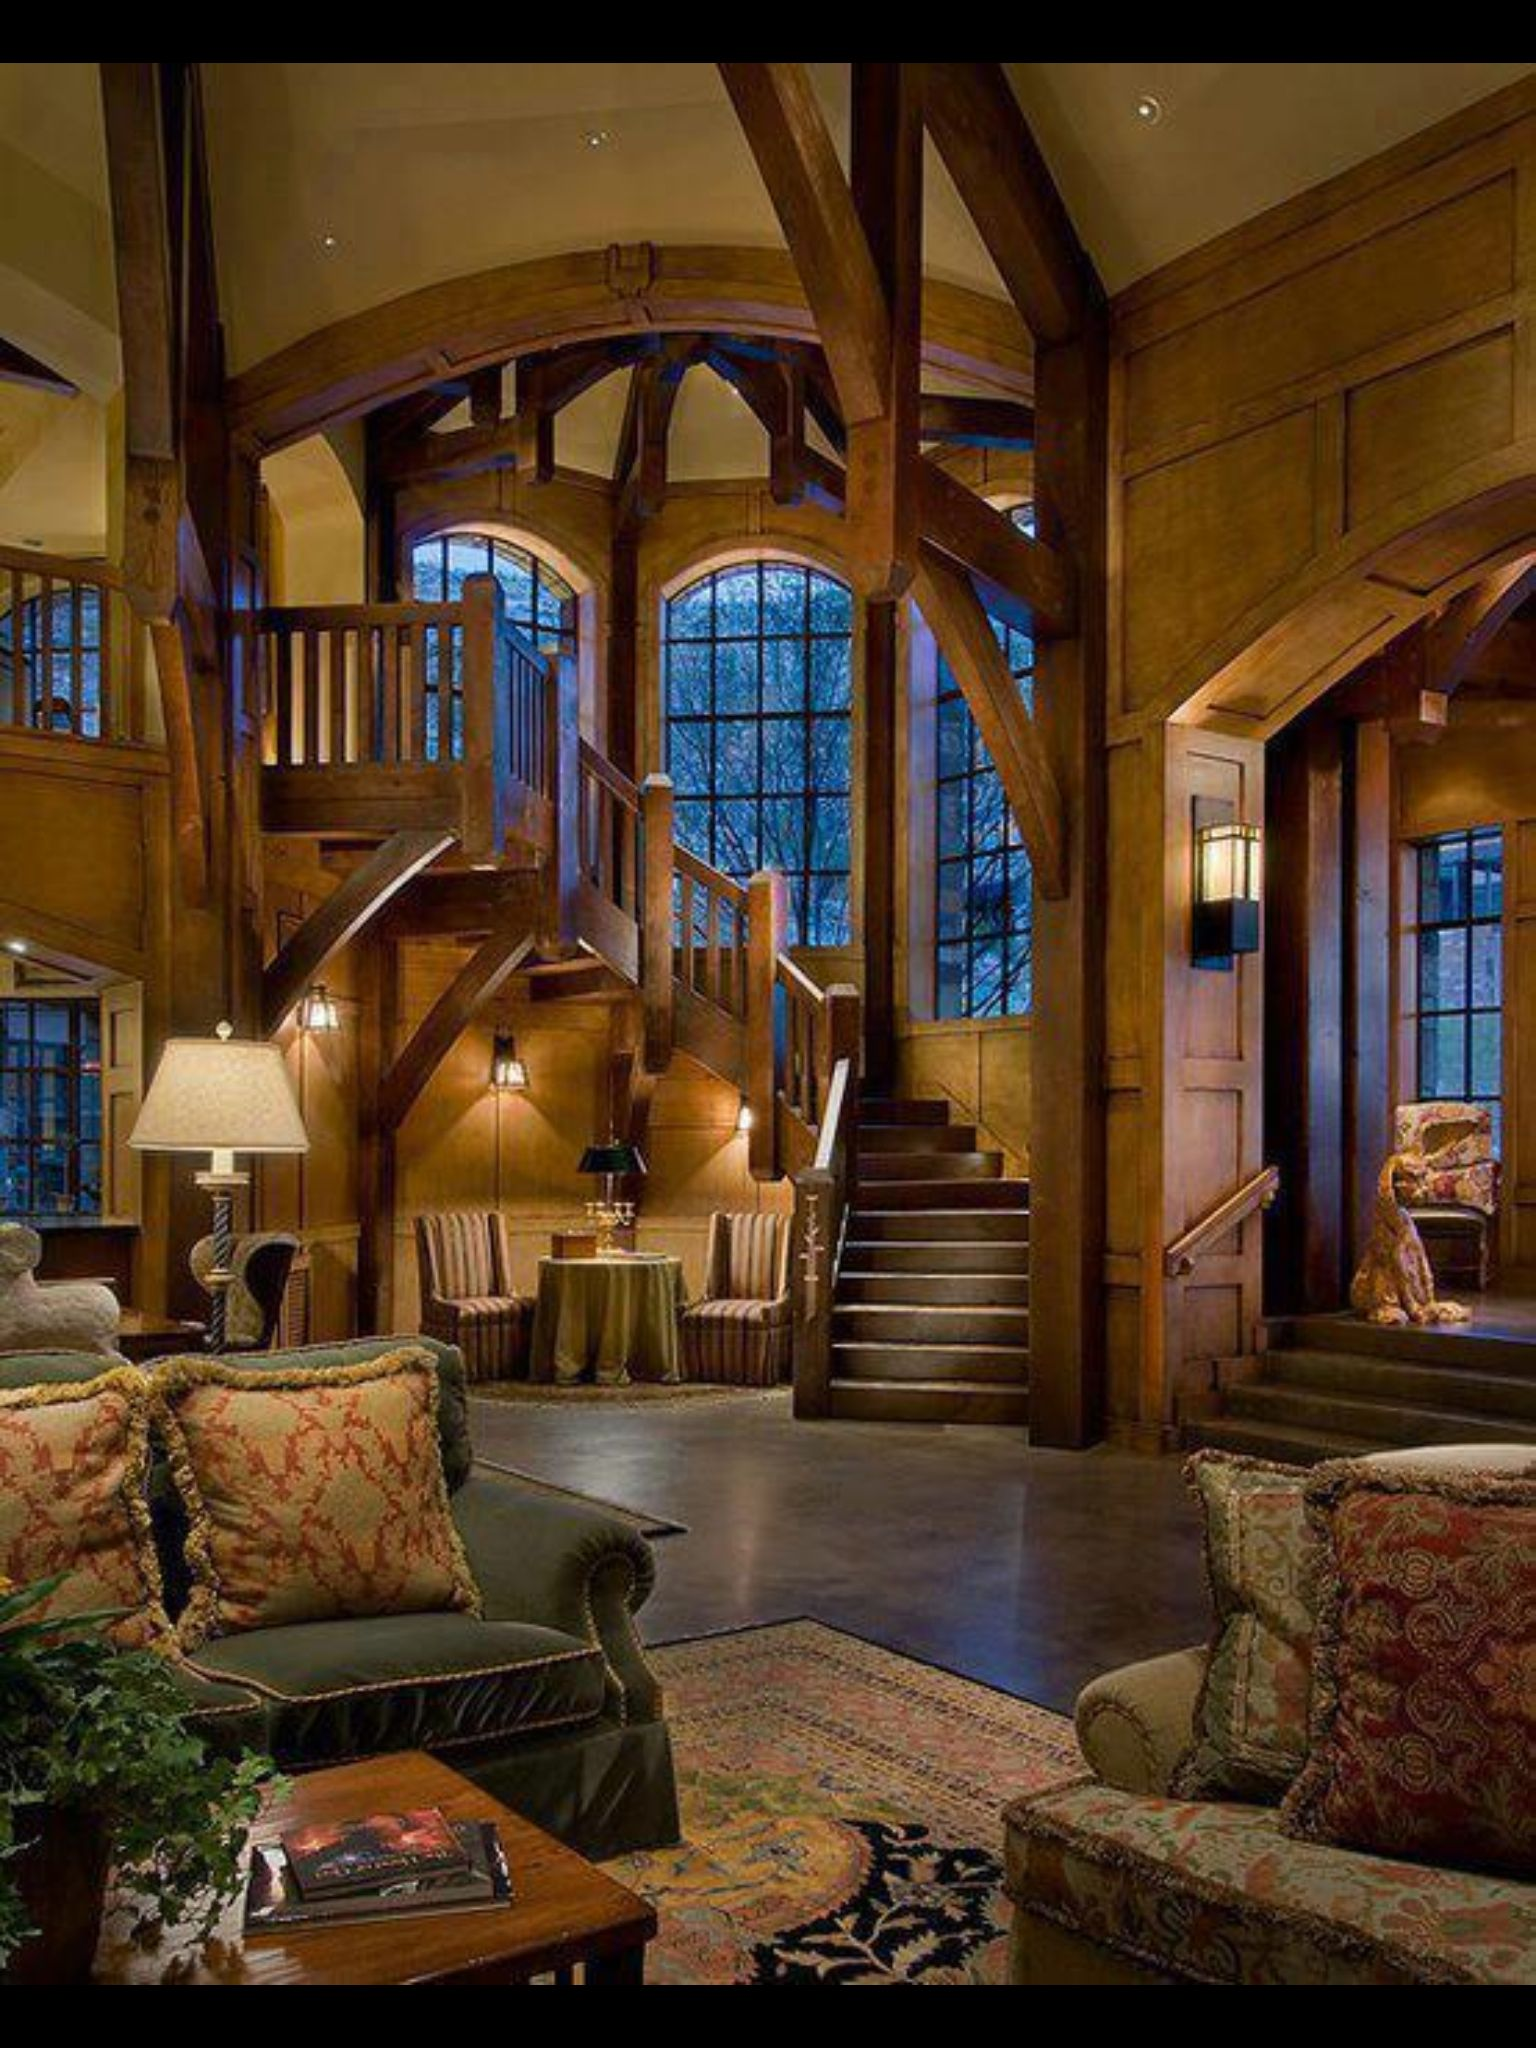 Rustic home decorating ideas on pinterest pin it like image